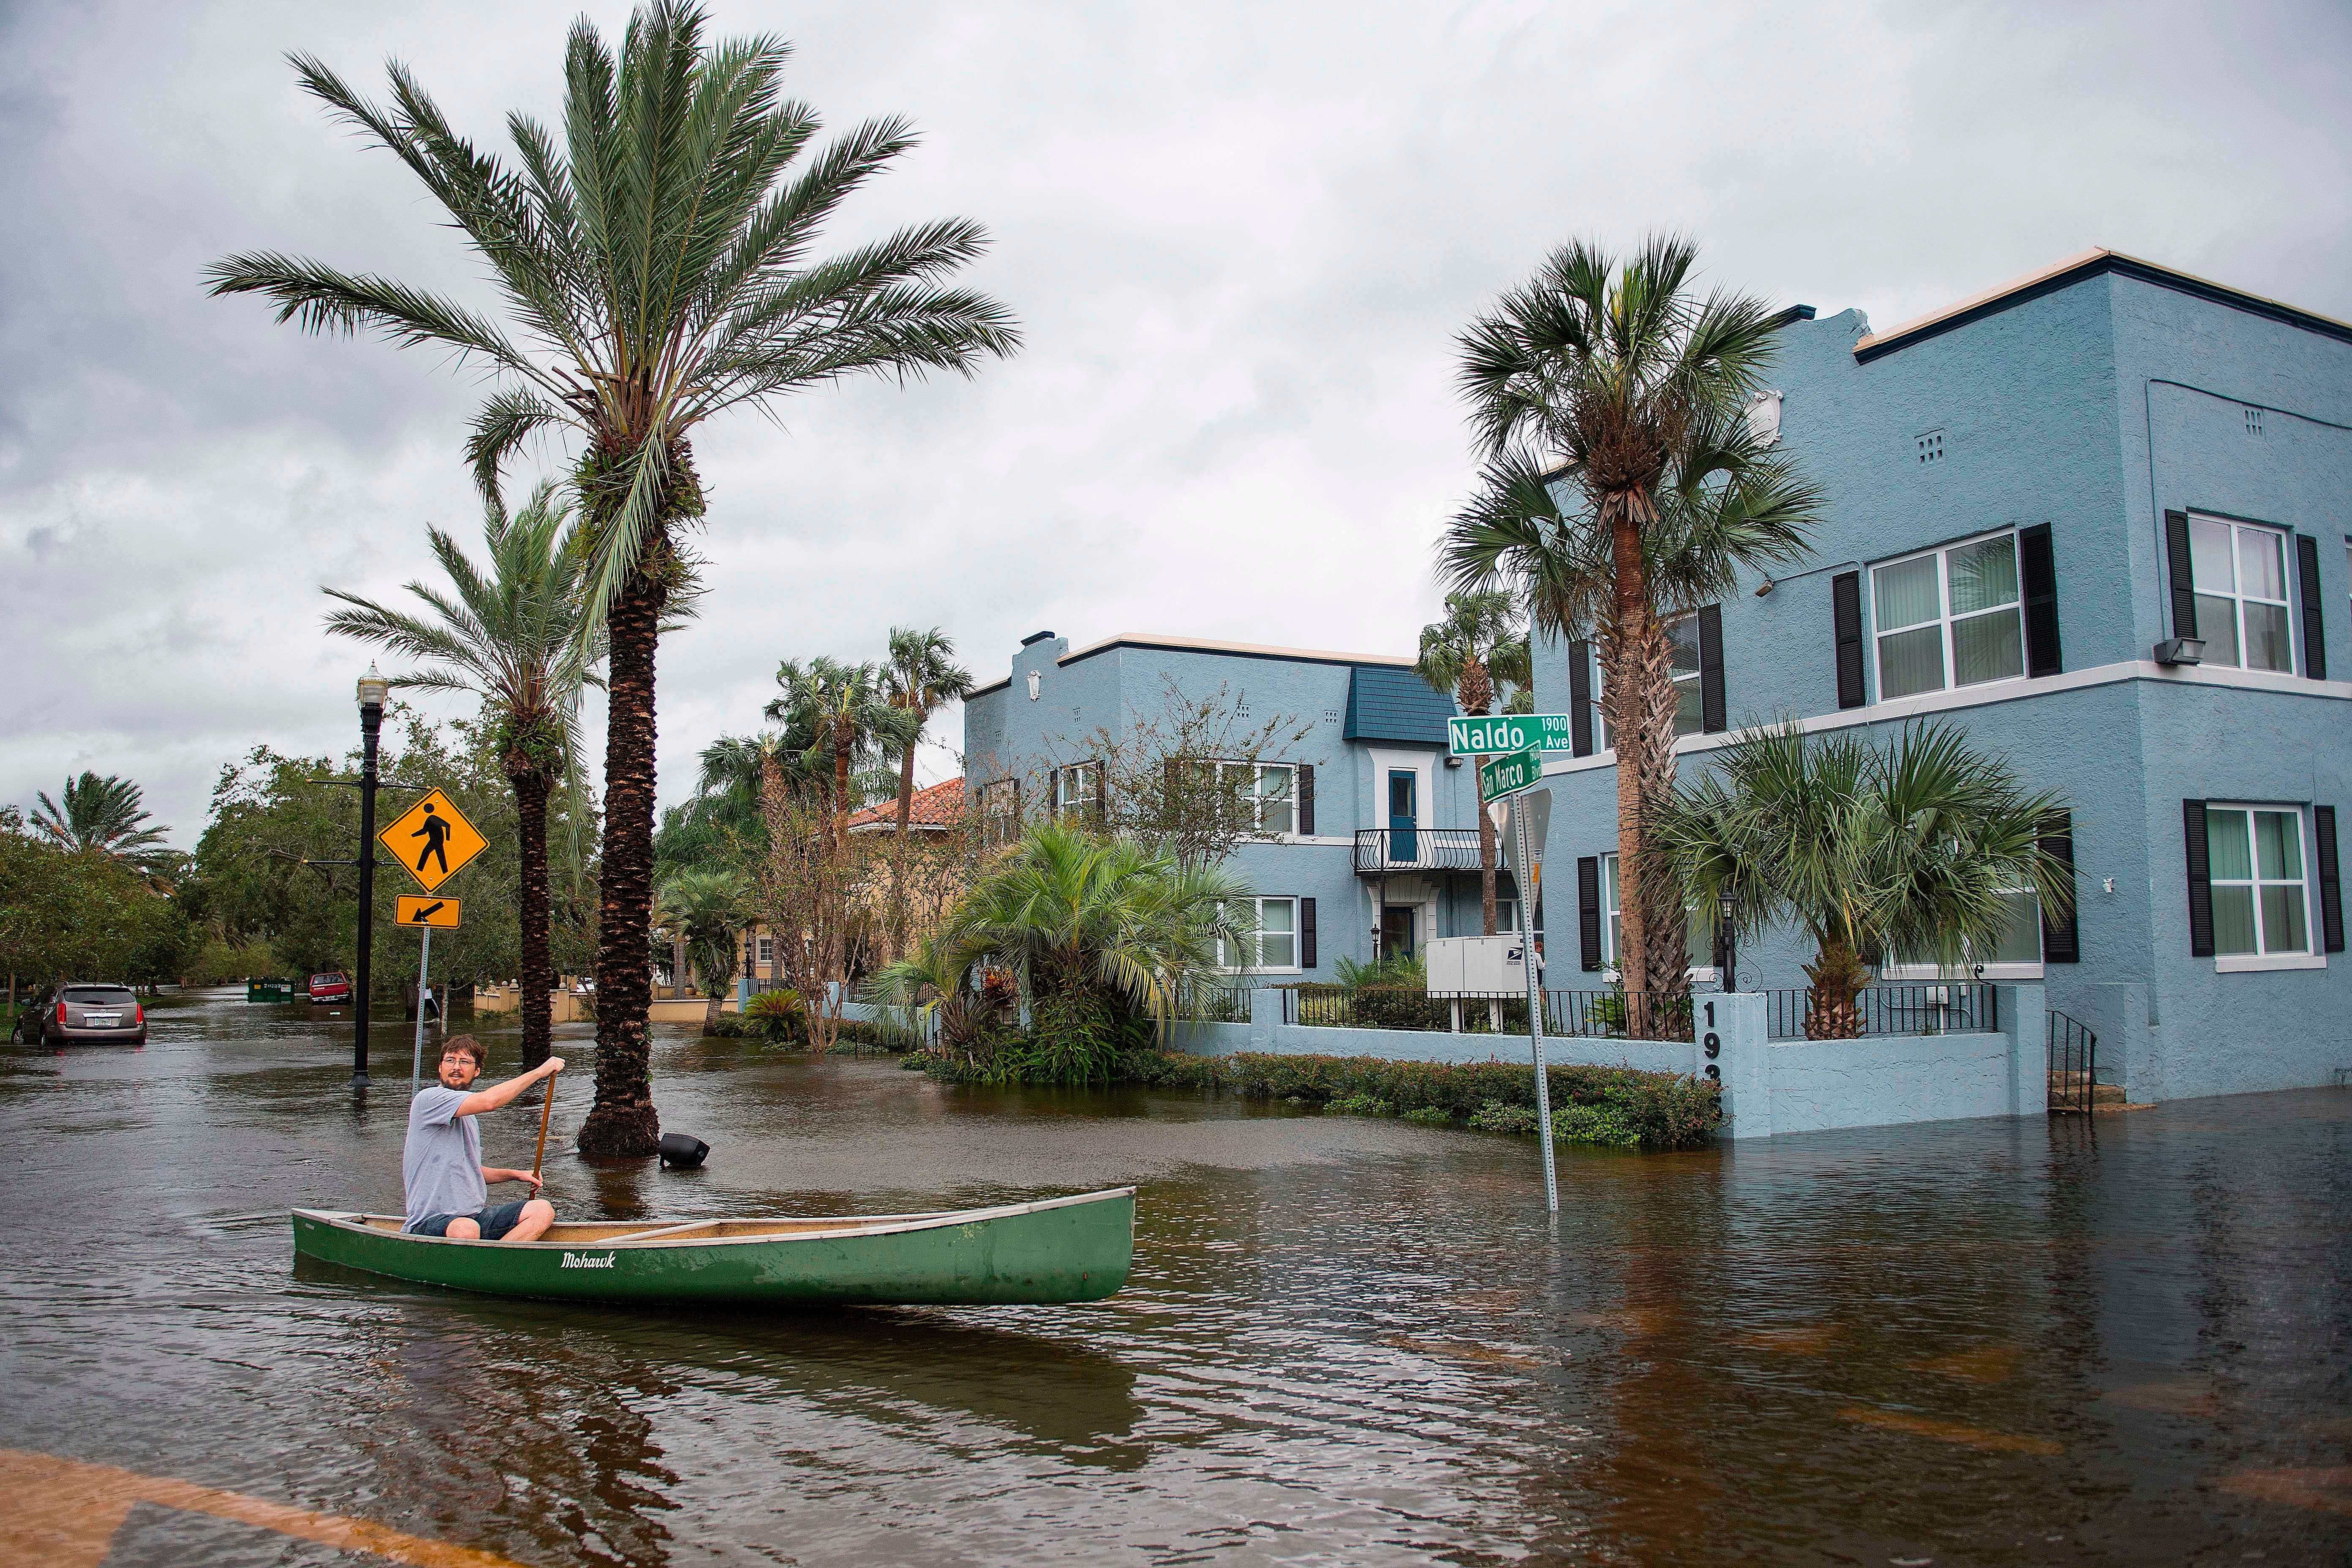 A man canoes through the flooded streets of the San Marco historic district of Jacksonville, Florida, on September 11, 2017, after storm surge from Hurricane Irma left the area flooded. / AFP PHOTO / JIM WATSON        (Photo credit should read JIM WATSON/AFP/Getty Images)